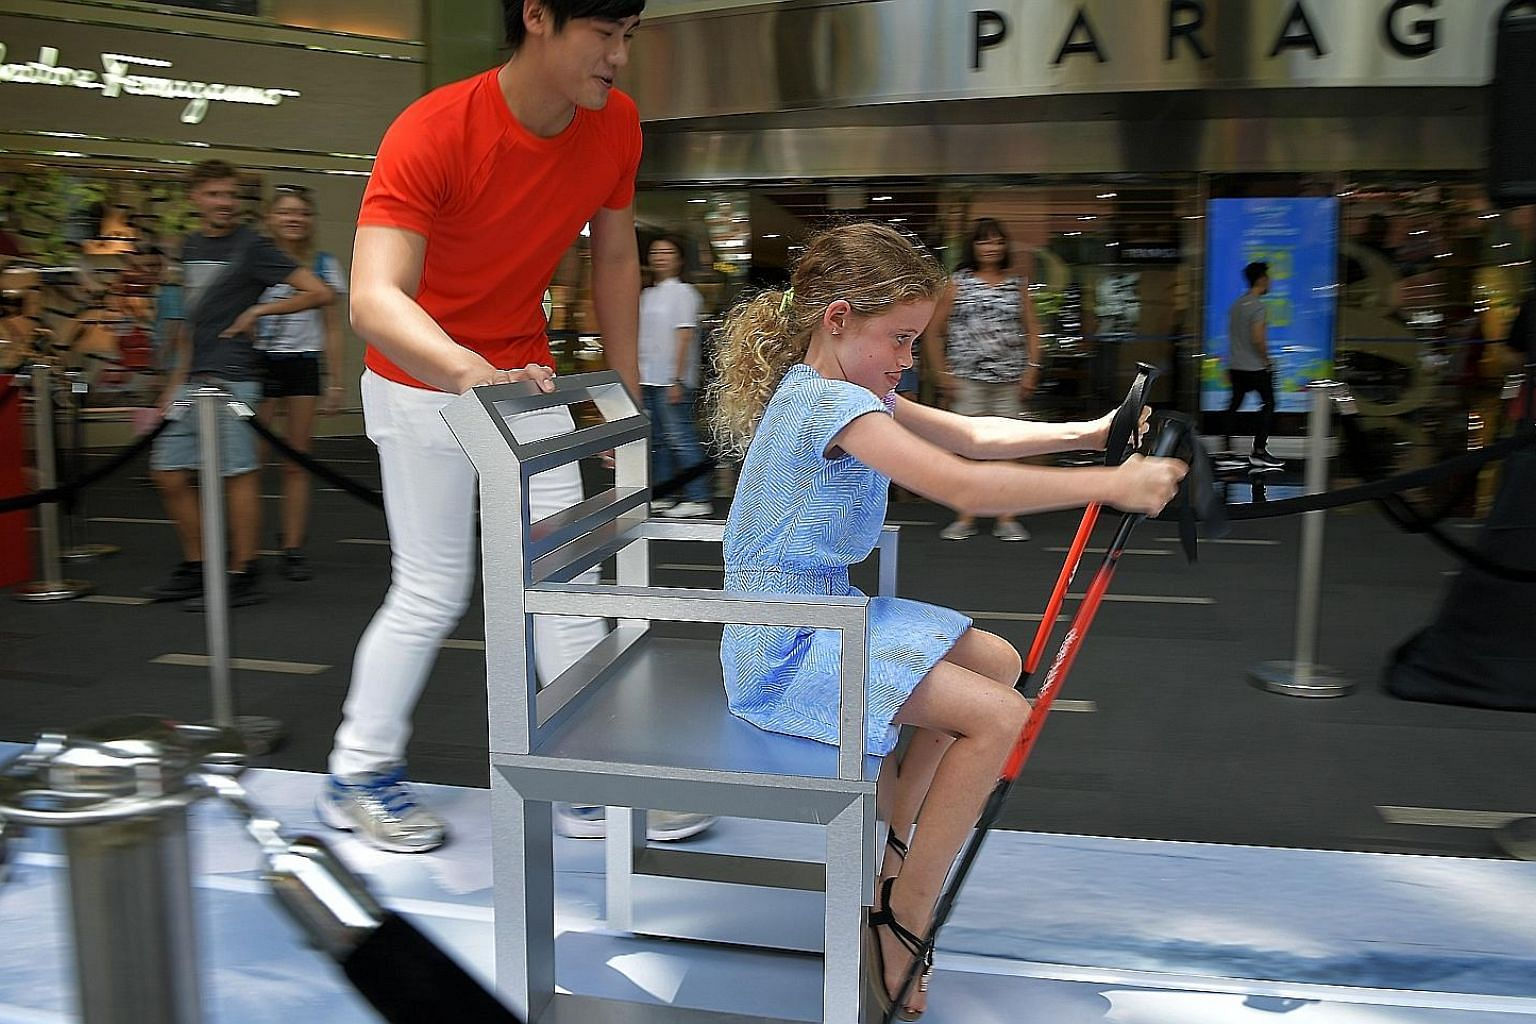 Eight-year-old Mili Reiter was among the adventurous shoppers who tried out the ski dash challenge, which involved gliding across a 12m ski track, at Paragon's main entrance yesterday. In collaboration with the Embassy of Switzerland and the Switzerl